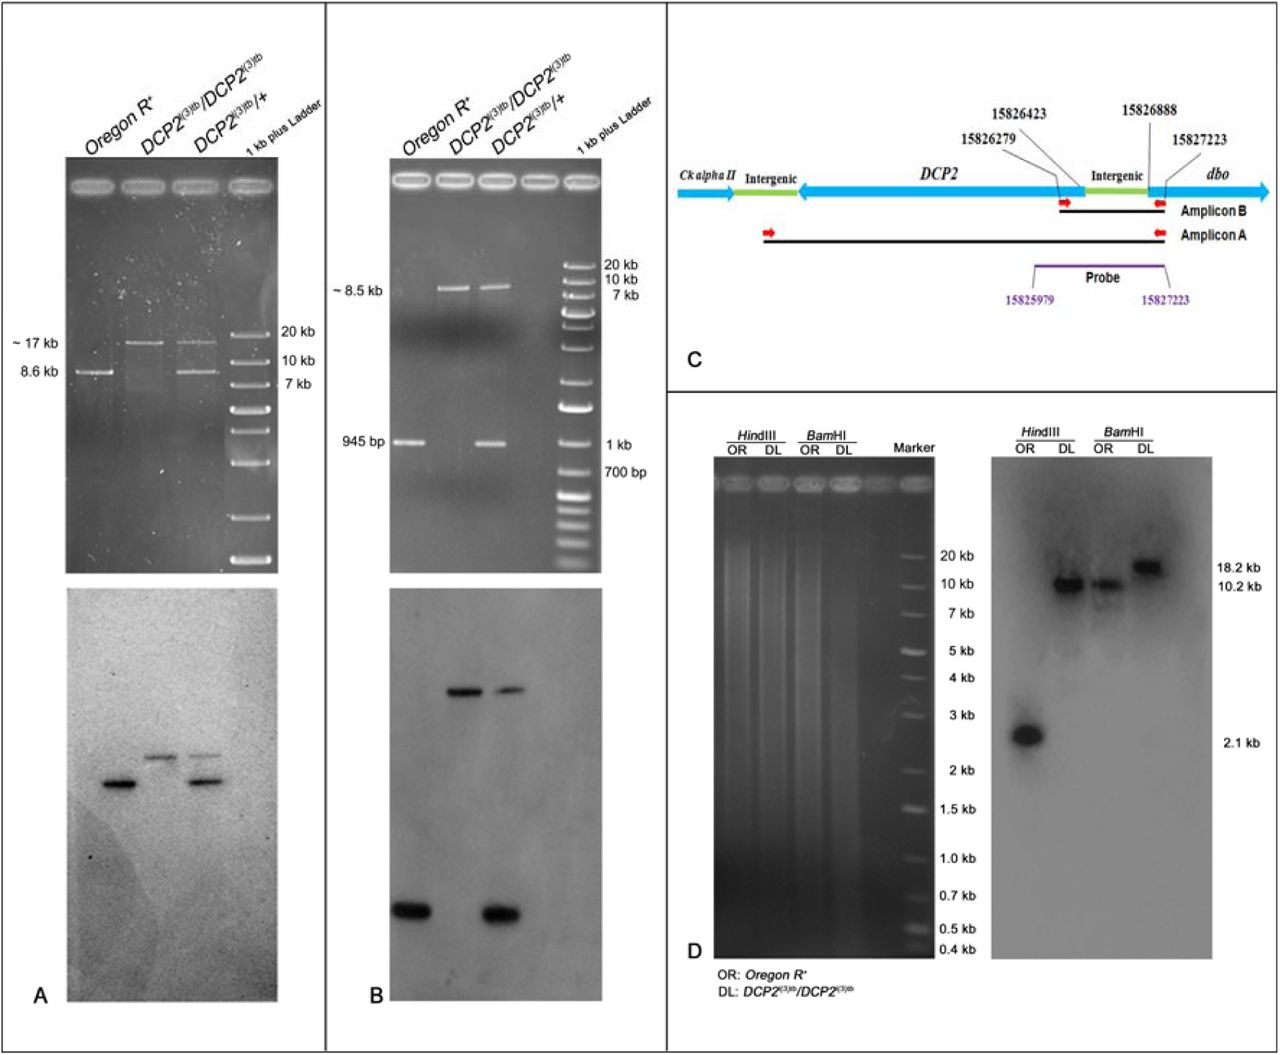 Gel electrophoretogram showing the PCR analysis of the full-length DCP2 (A) and candidate region (B) in the wild type, mutant and the heterozygote. The schematic in C shows the gene arrangement along the chromosome along with the important coordinates. The primers are indicated by red arrows. For amplification of the full – length gene, the wild type amplicon is of 8.6 kb while the mutant amplicon is sized ∼17 kb (A, upper half), whereas the wild type amplicon for the candidate region is of 945 bp while the mutant amplicon is sized ∼8.5 kb (B, upper half). The heterozygote harbors both the alleles (wild type and mutant) and thus shows both the amplicons. The lower half in both A and B shows the the blot of the same probed with the pGEM-T-812 probe which spans the candidate mutated region in DCP2 and is represented by the purple line. D shows the gel electrophoretogram and Southern blot of DCP2 in the wild type and mutant genome. Hin dIII digested genomic DNA showed banding at ∼ 2.1 kb in the wild type genome as against ∼ 10 kb in the mutant genome, the size difference being almost in agreement with the banding profile exemplified by Bam HI digestion, with the wild type genome hybridizing at ∼ 10.2 kb and the mutant at ∼ 18 kb.